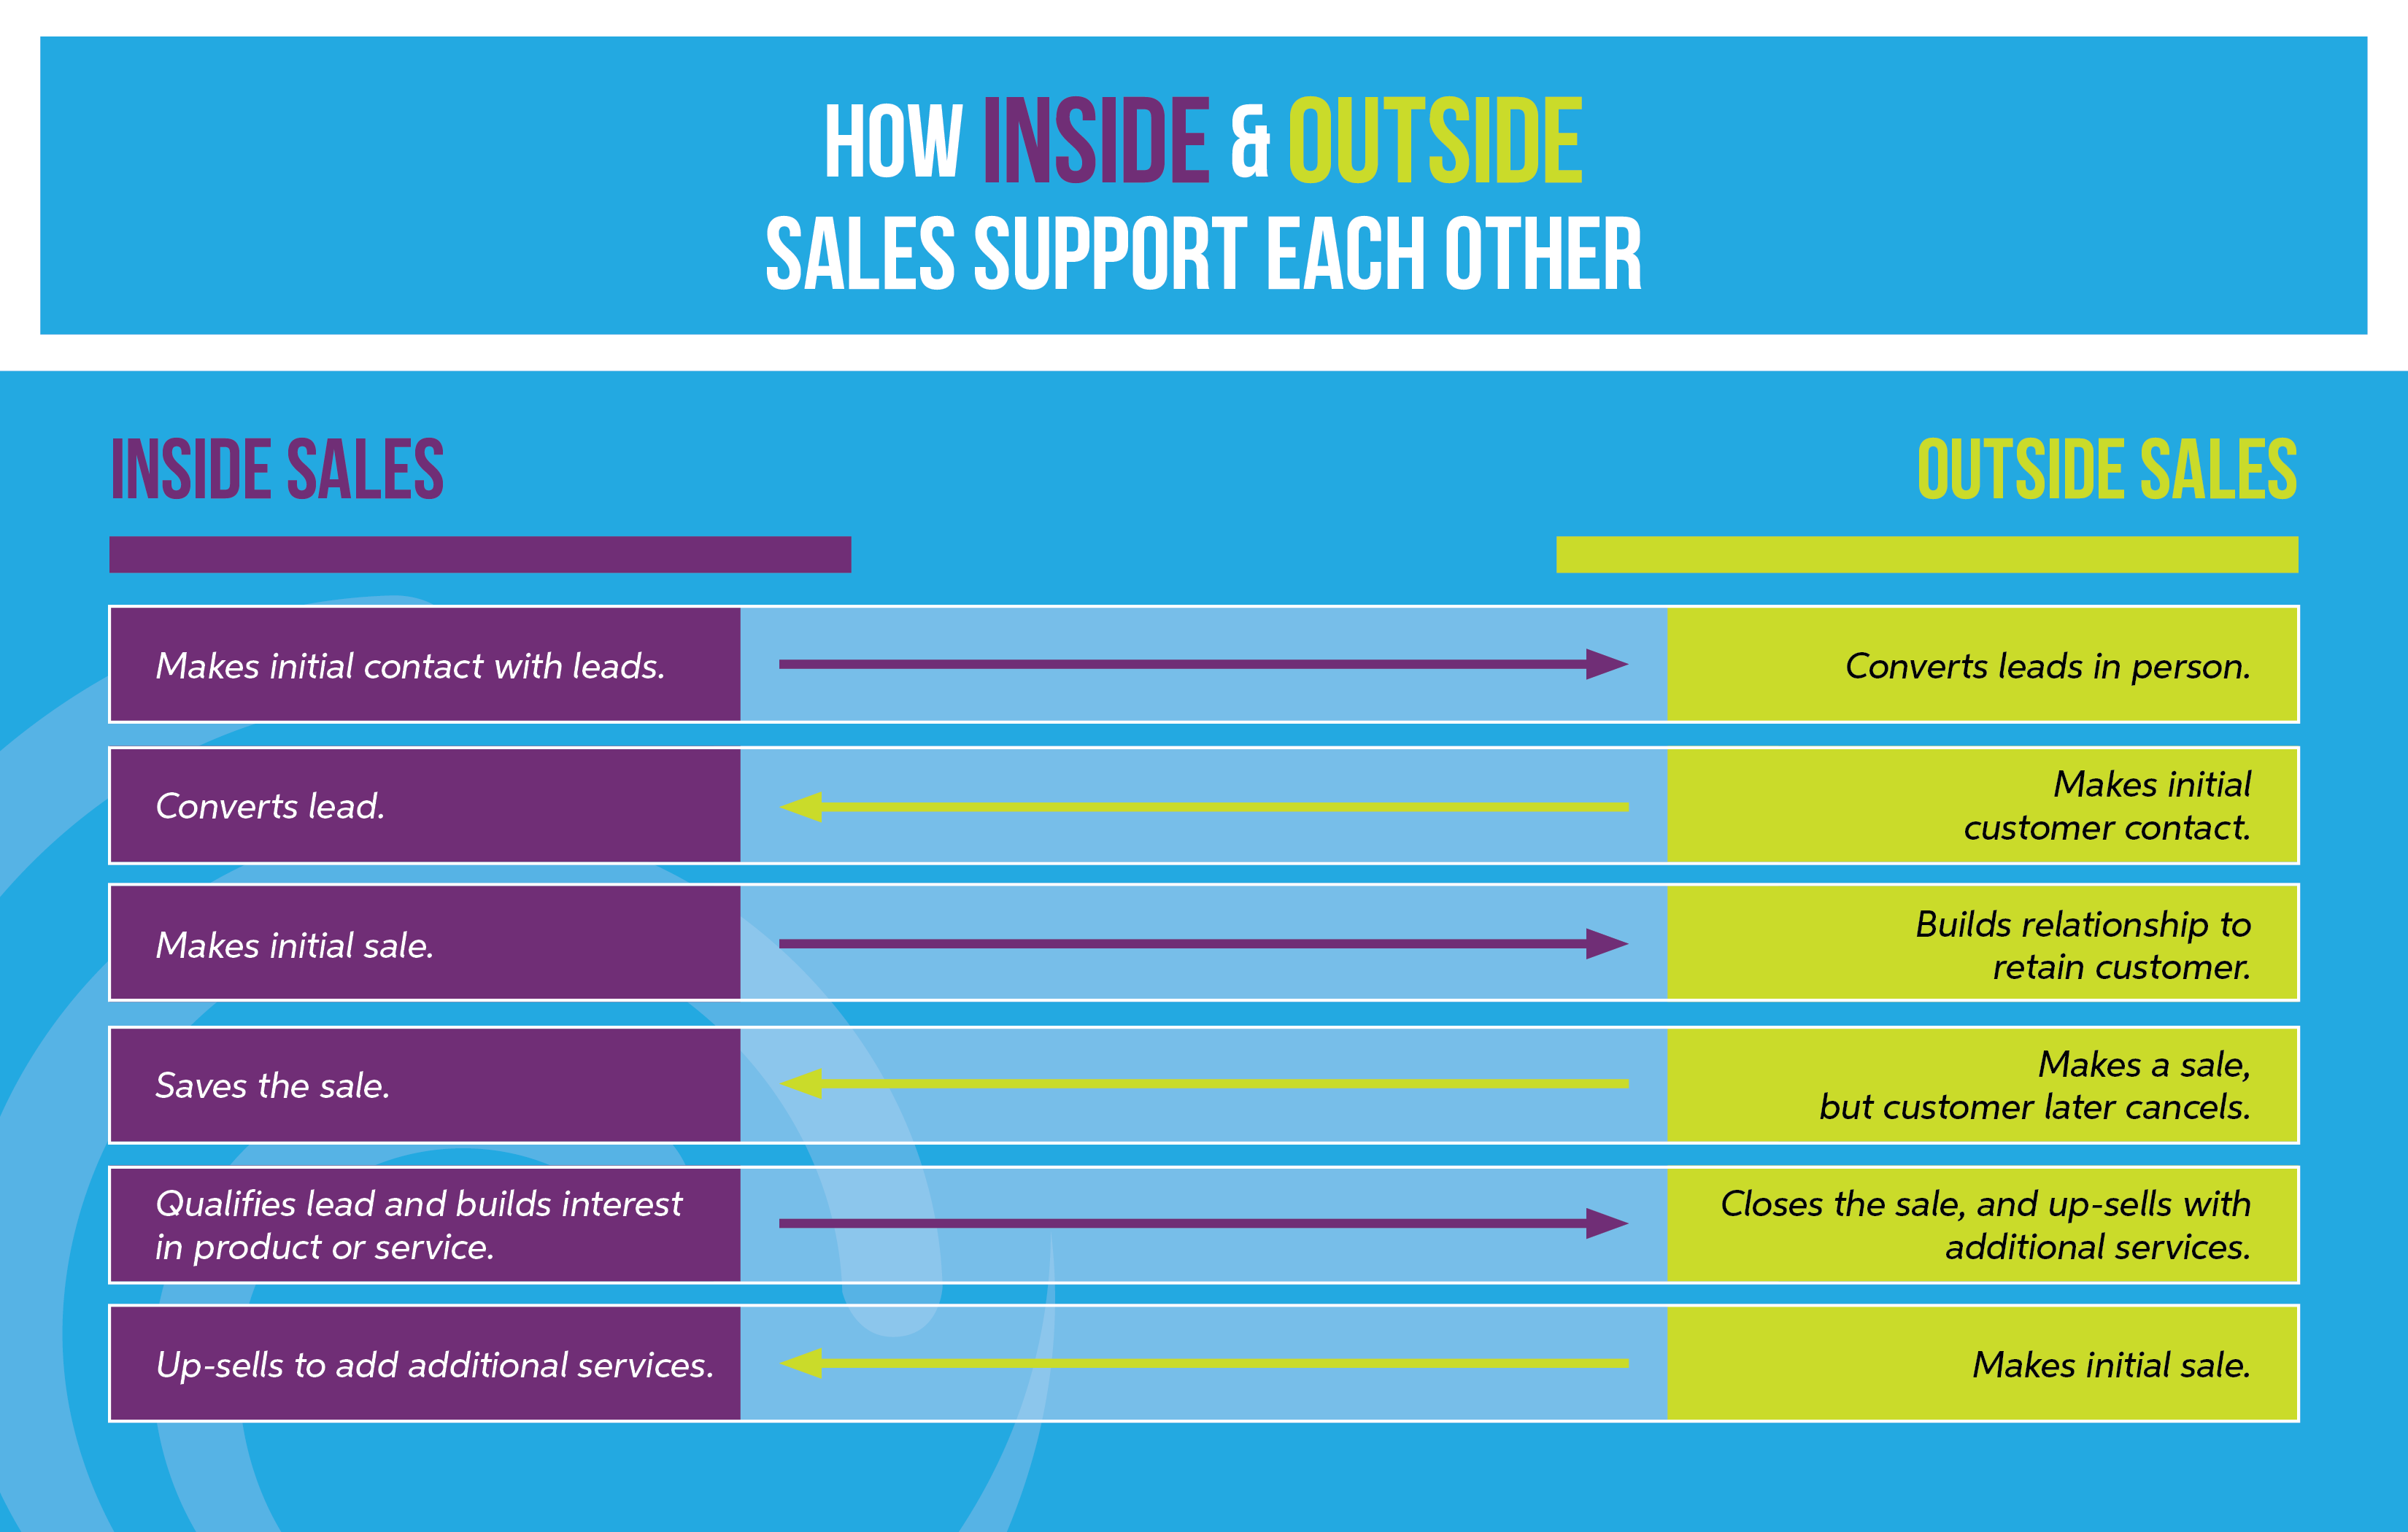 Chart showing ways inside and outside sales work together